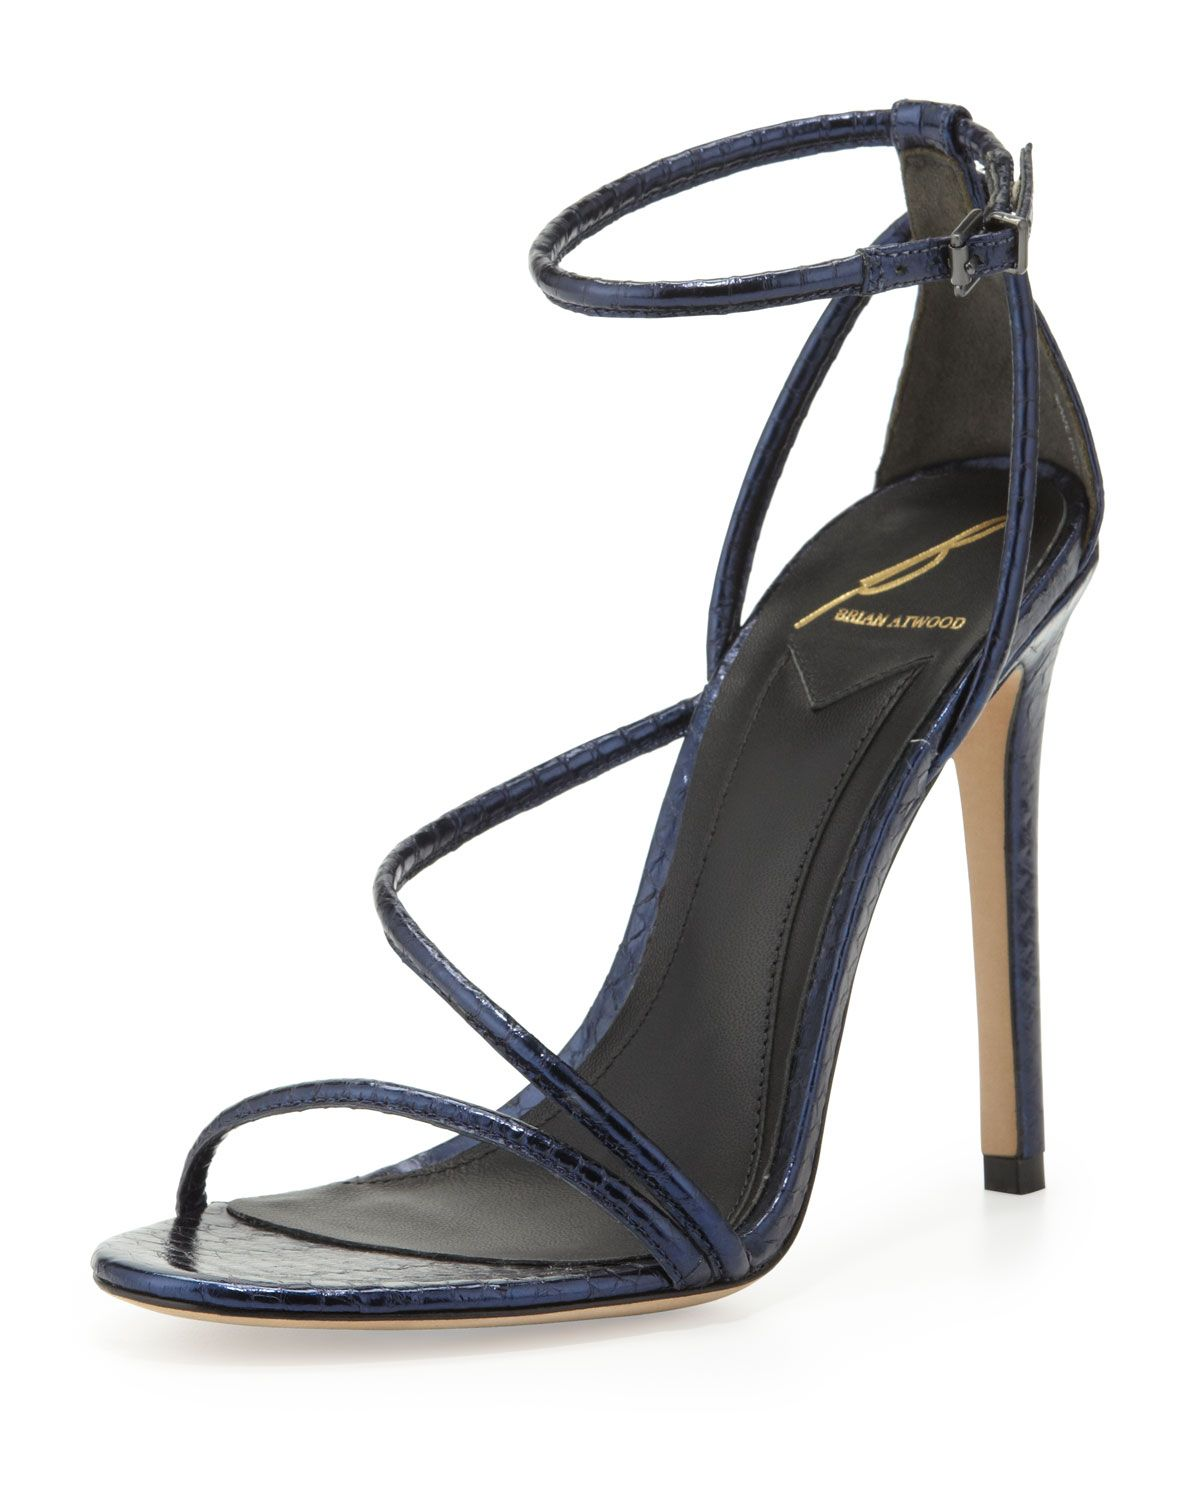 B Brian Atwood Labrea Metallic Snake Sandal Navy in Blue (DARK BLUE) | Lyst